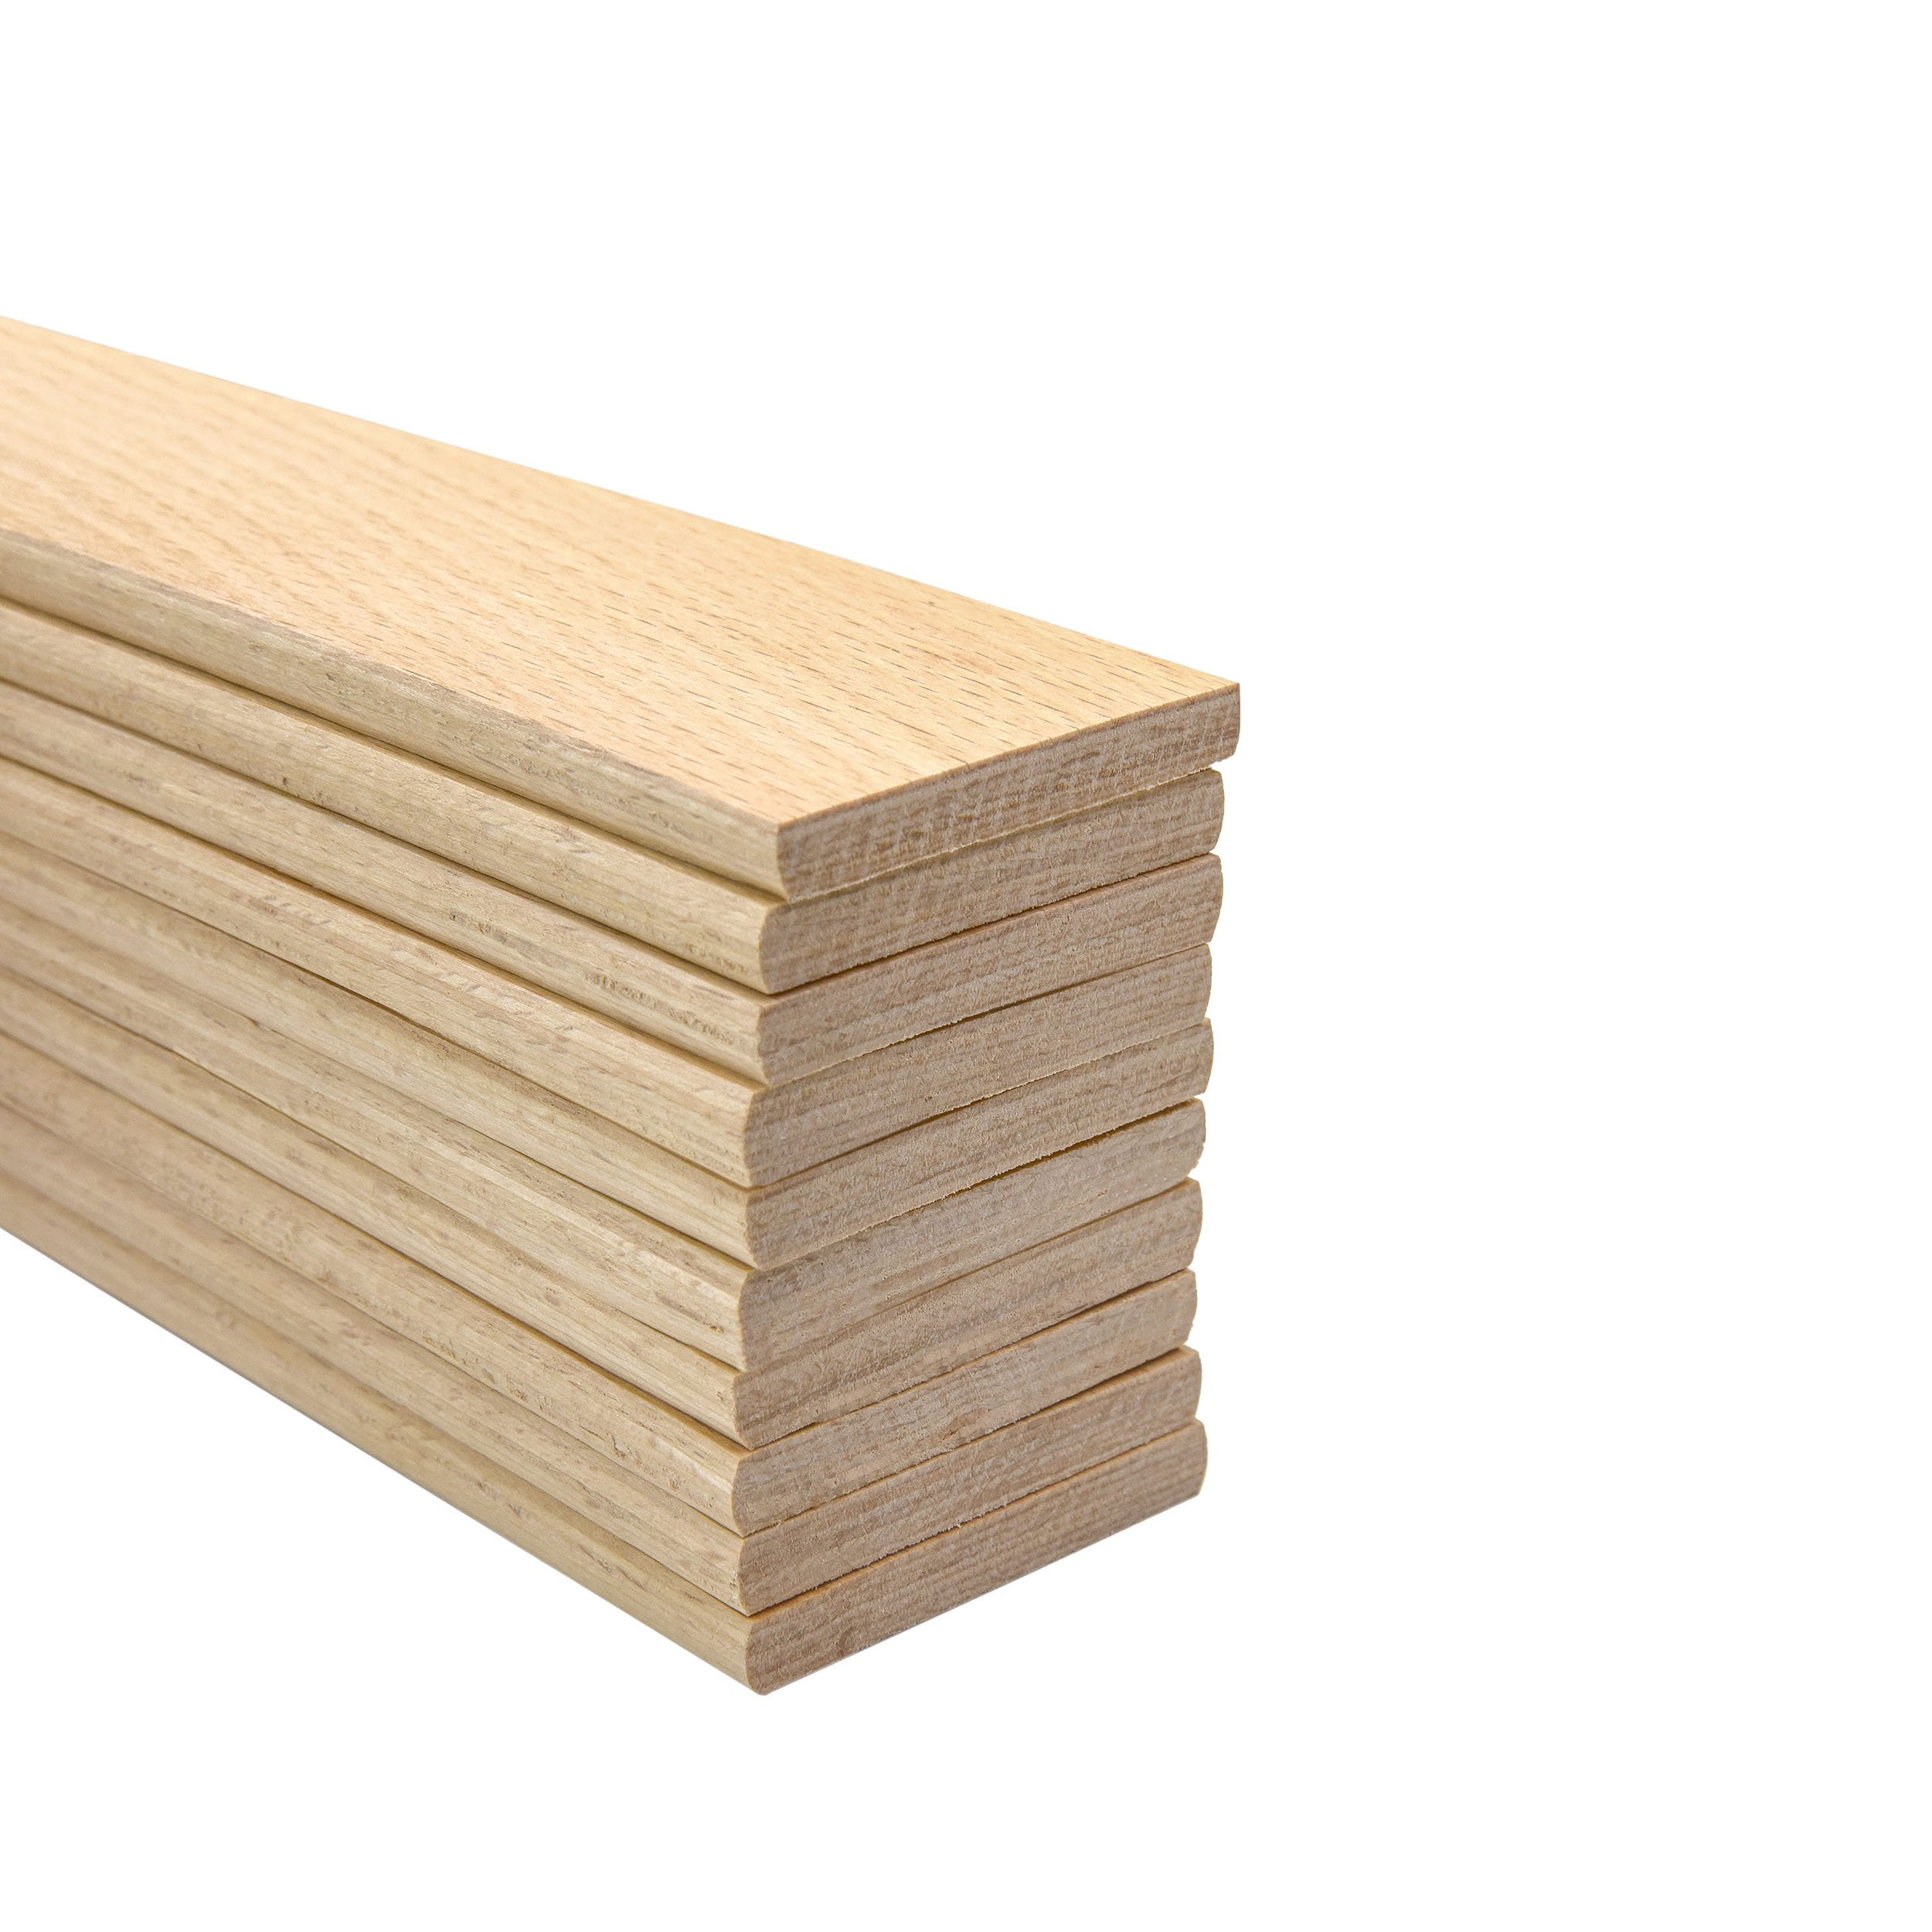 Single Double King Sprung Wooden Bed Slats 53mm /& 63mm Replacement Bed Slats